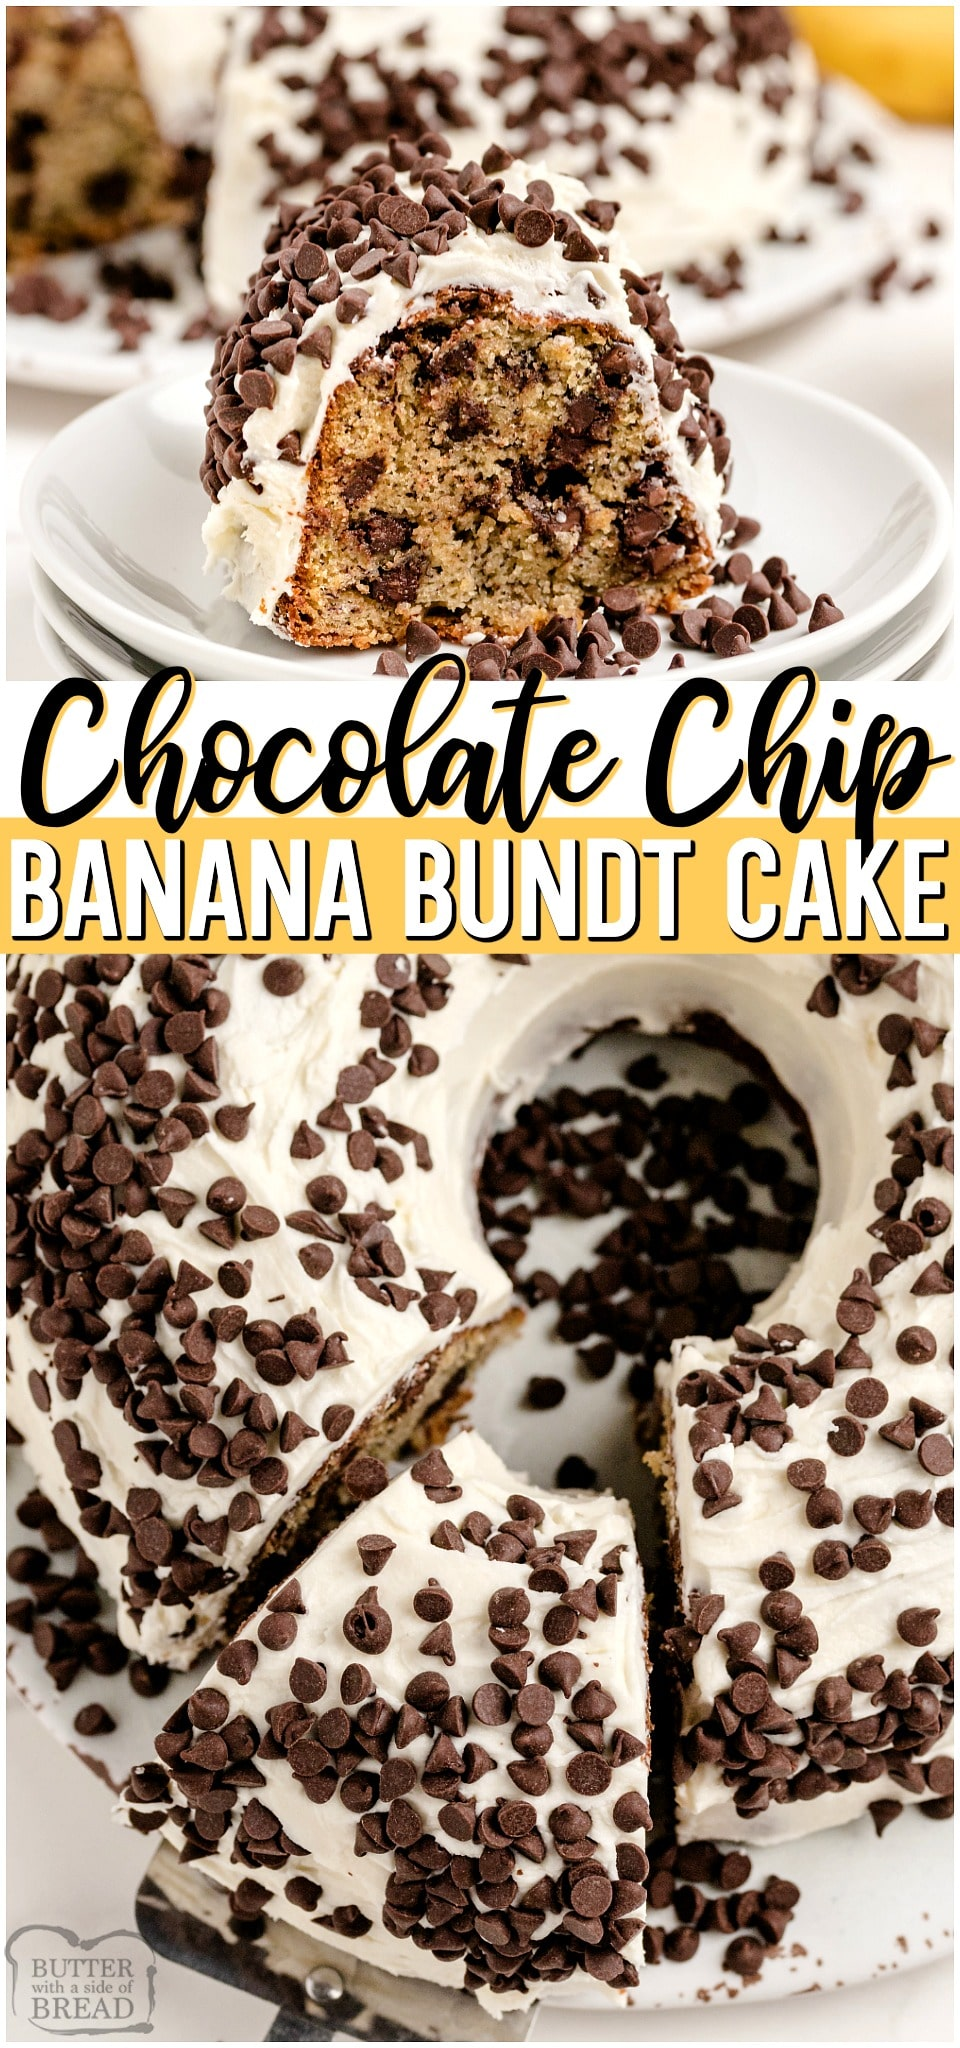 Chocolate Chip Banana Cake is a lovely homemade banana bundt cake recipe with chocolate chips! Fantastic flavor and wonderful frosting ~perfect recipe for ripe bananas! #banana #cake #bundt #dessert #baking #recipe #chocolatechips from BUTTER WITH A SIDE OF BREAD